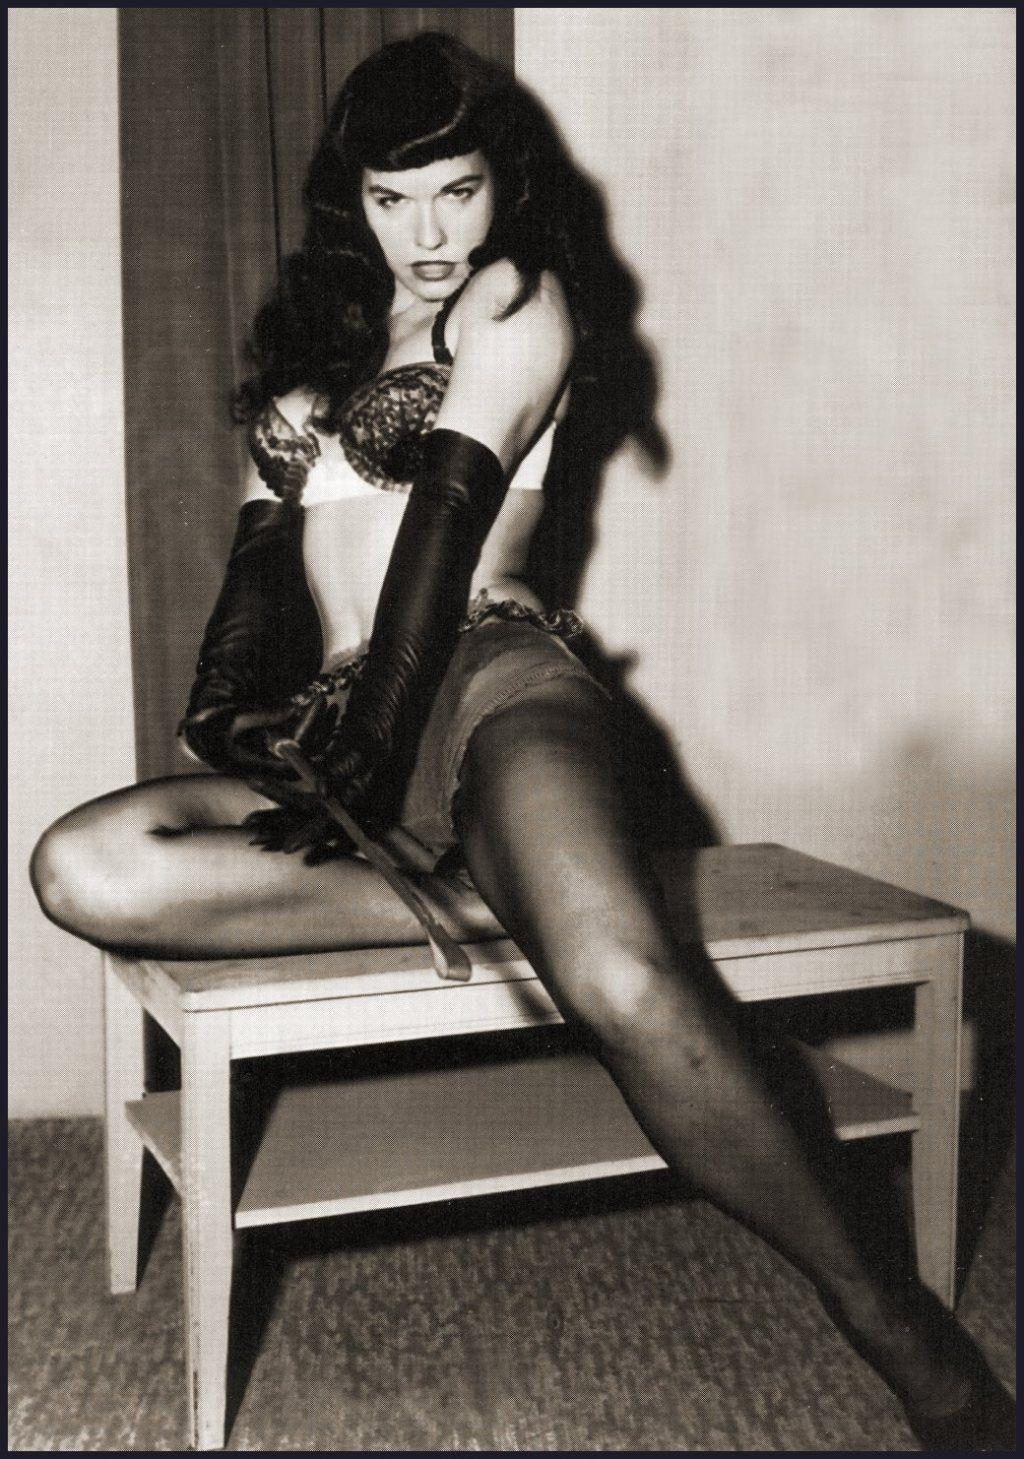 Dragonfly reccomend Betty page erotic ecards